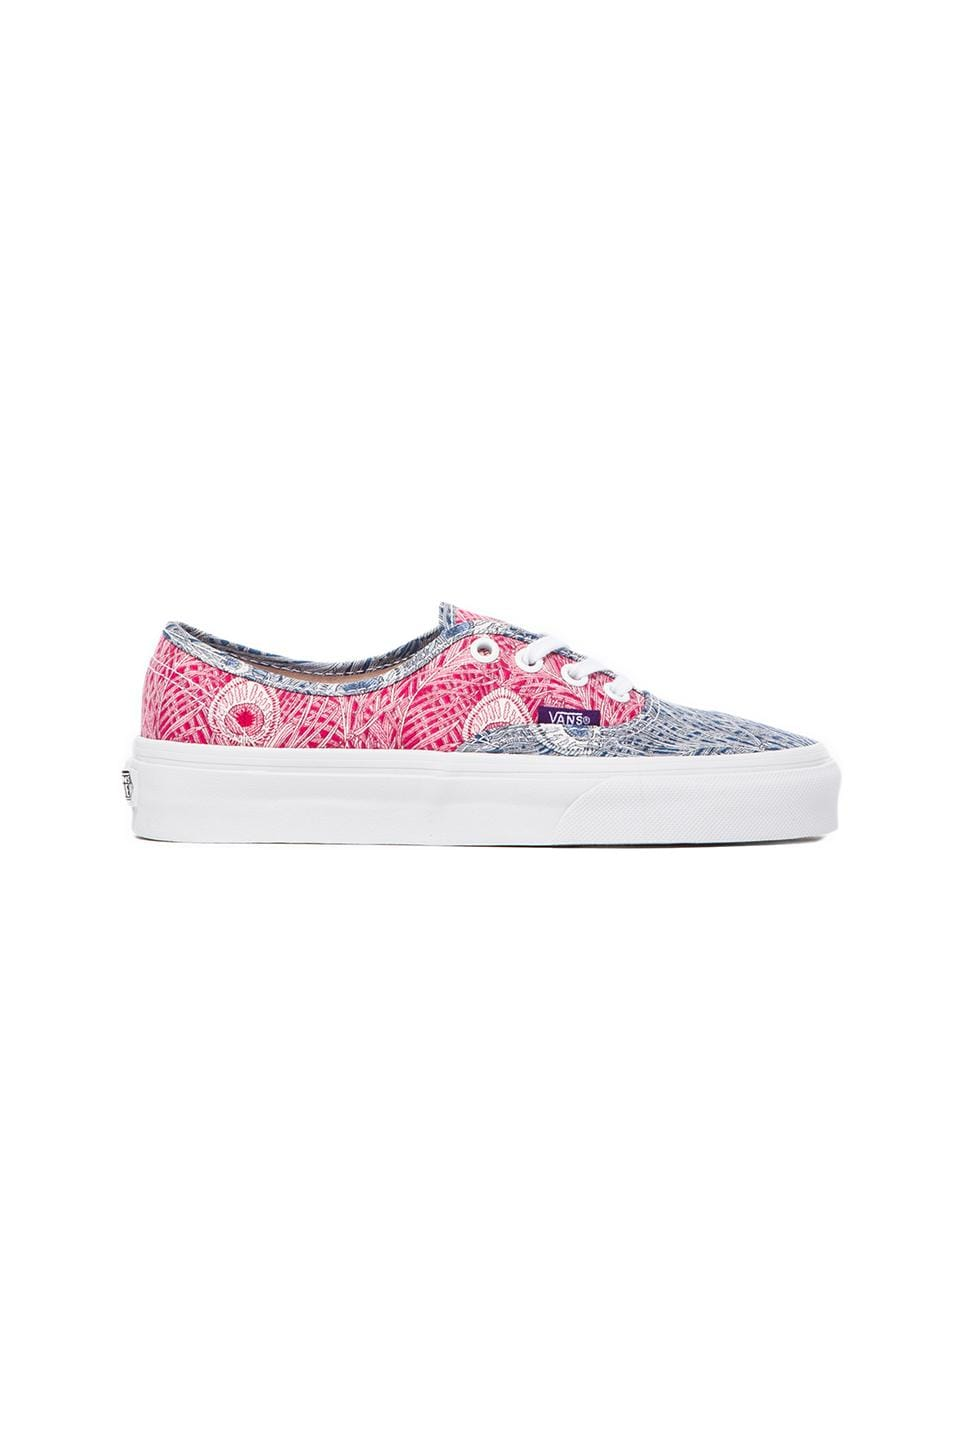 Vans Liberty Print Authentic in Peacock & True White